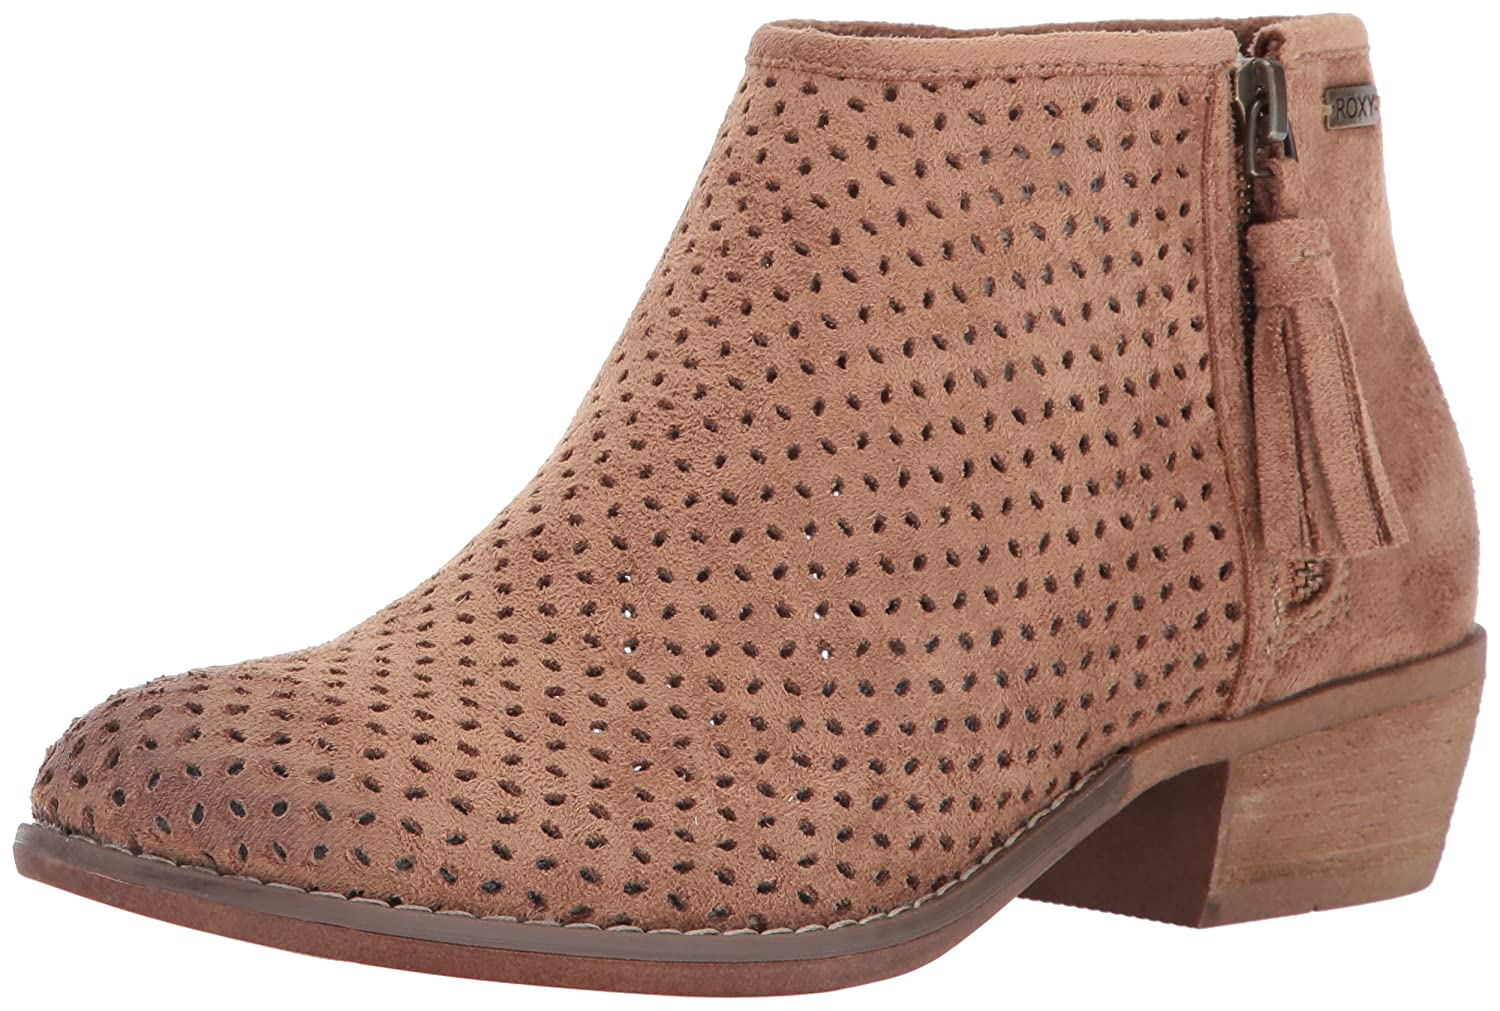 Roxy Women's Fuentes Ankle Bootie B01MSUQ94U 8 B(M) US|Brown